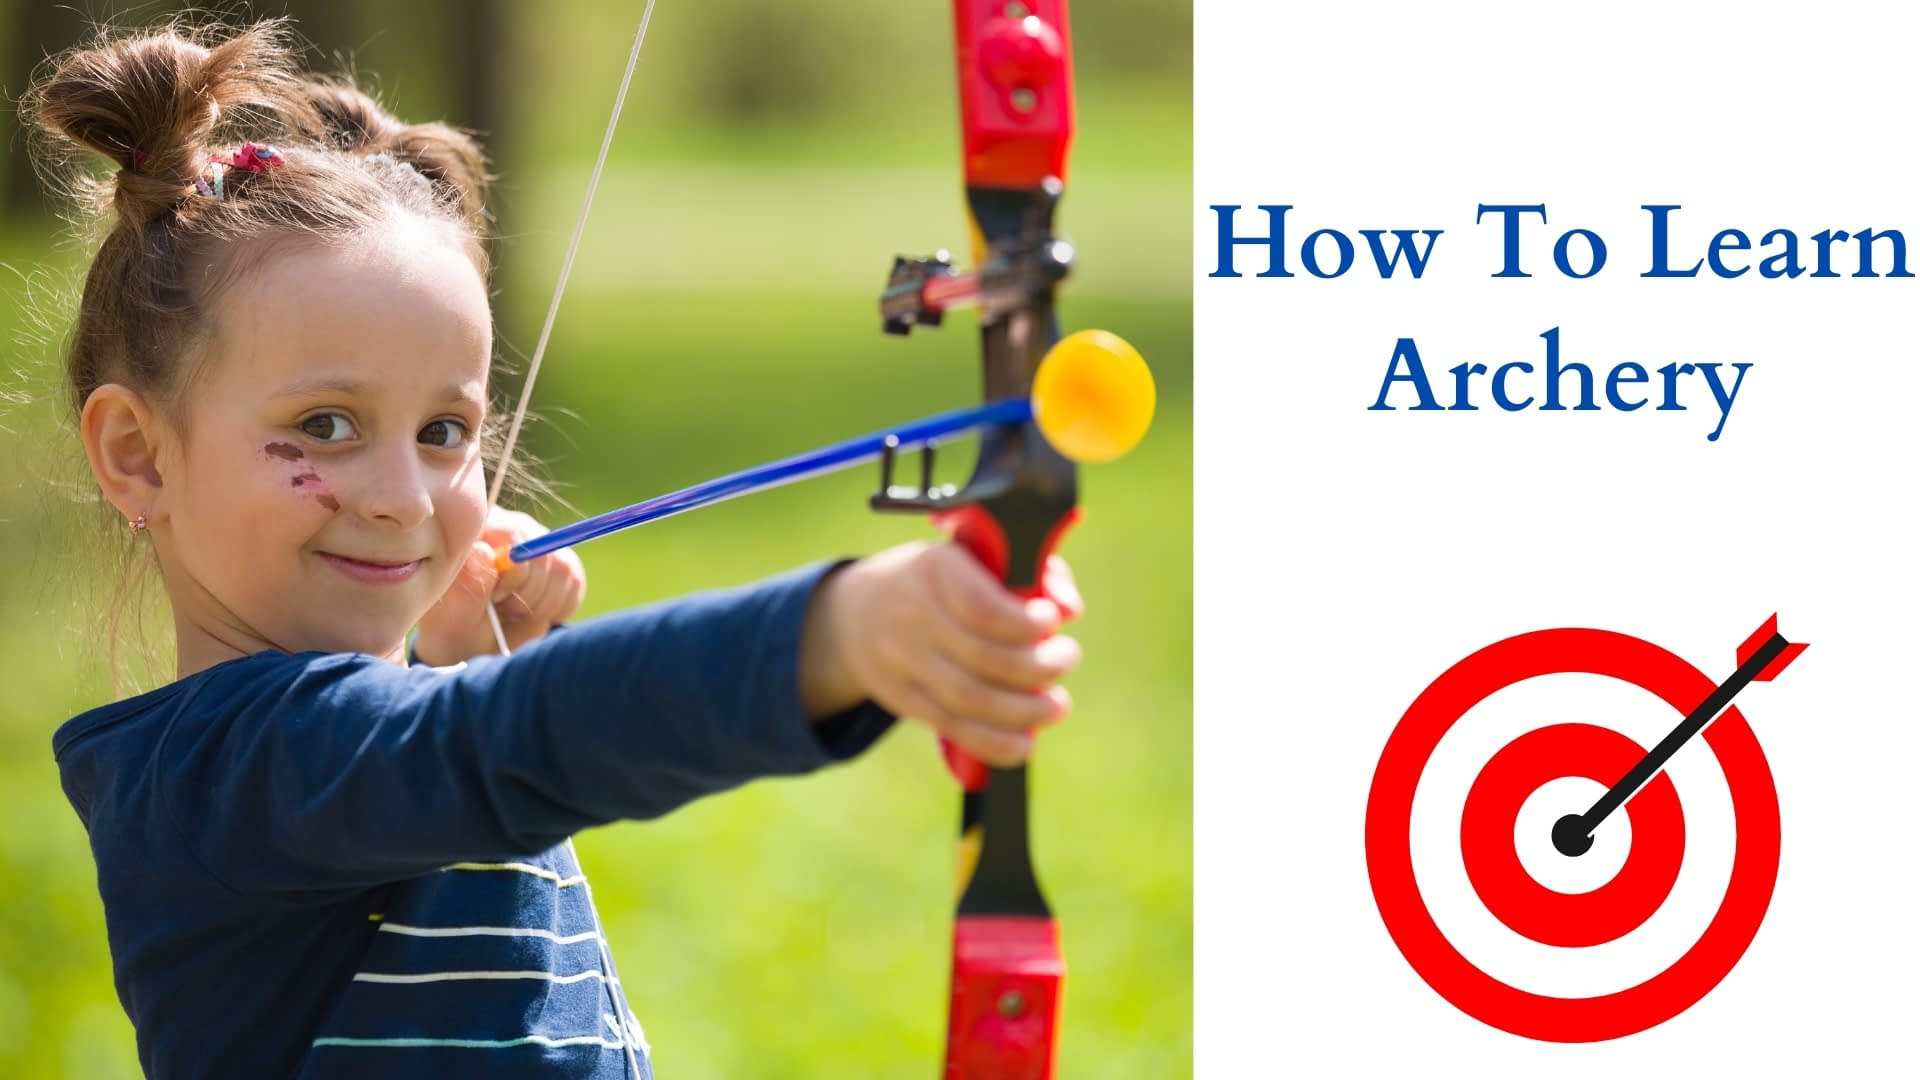 How To Learn Archery